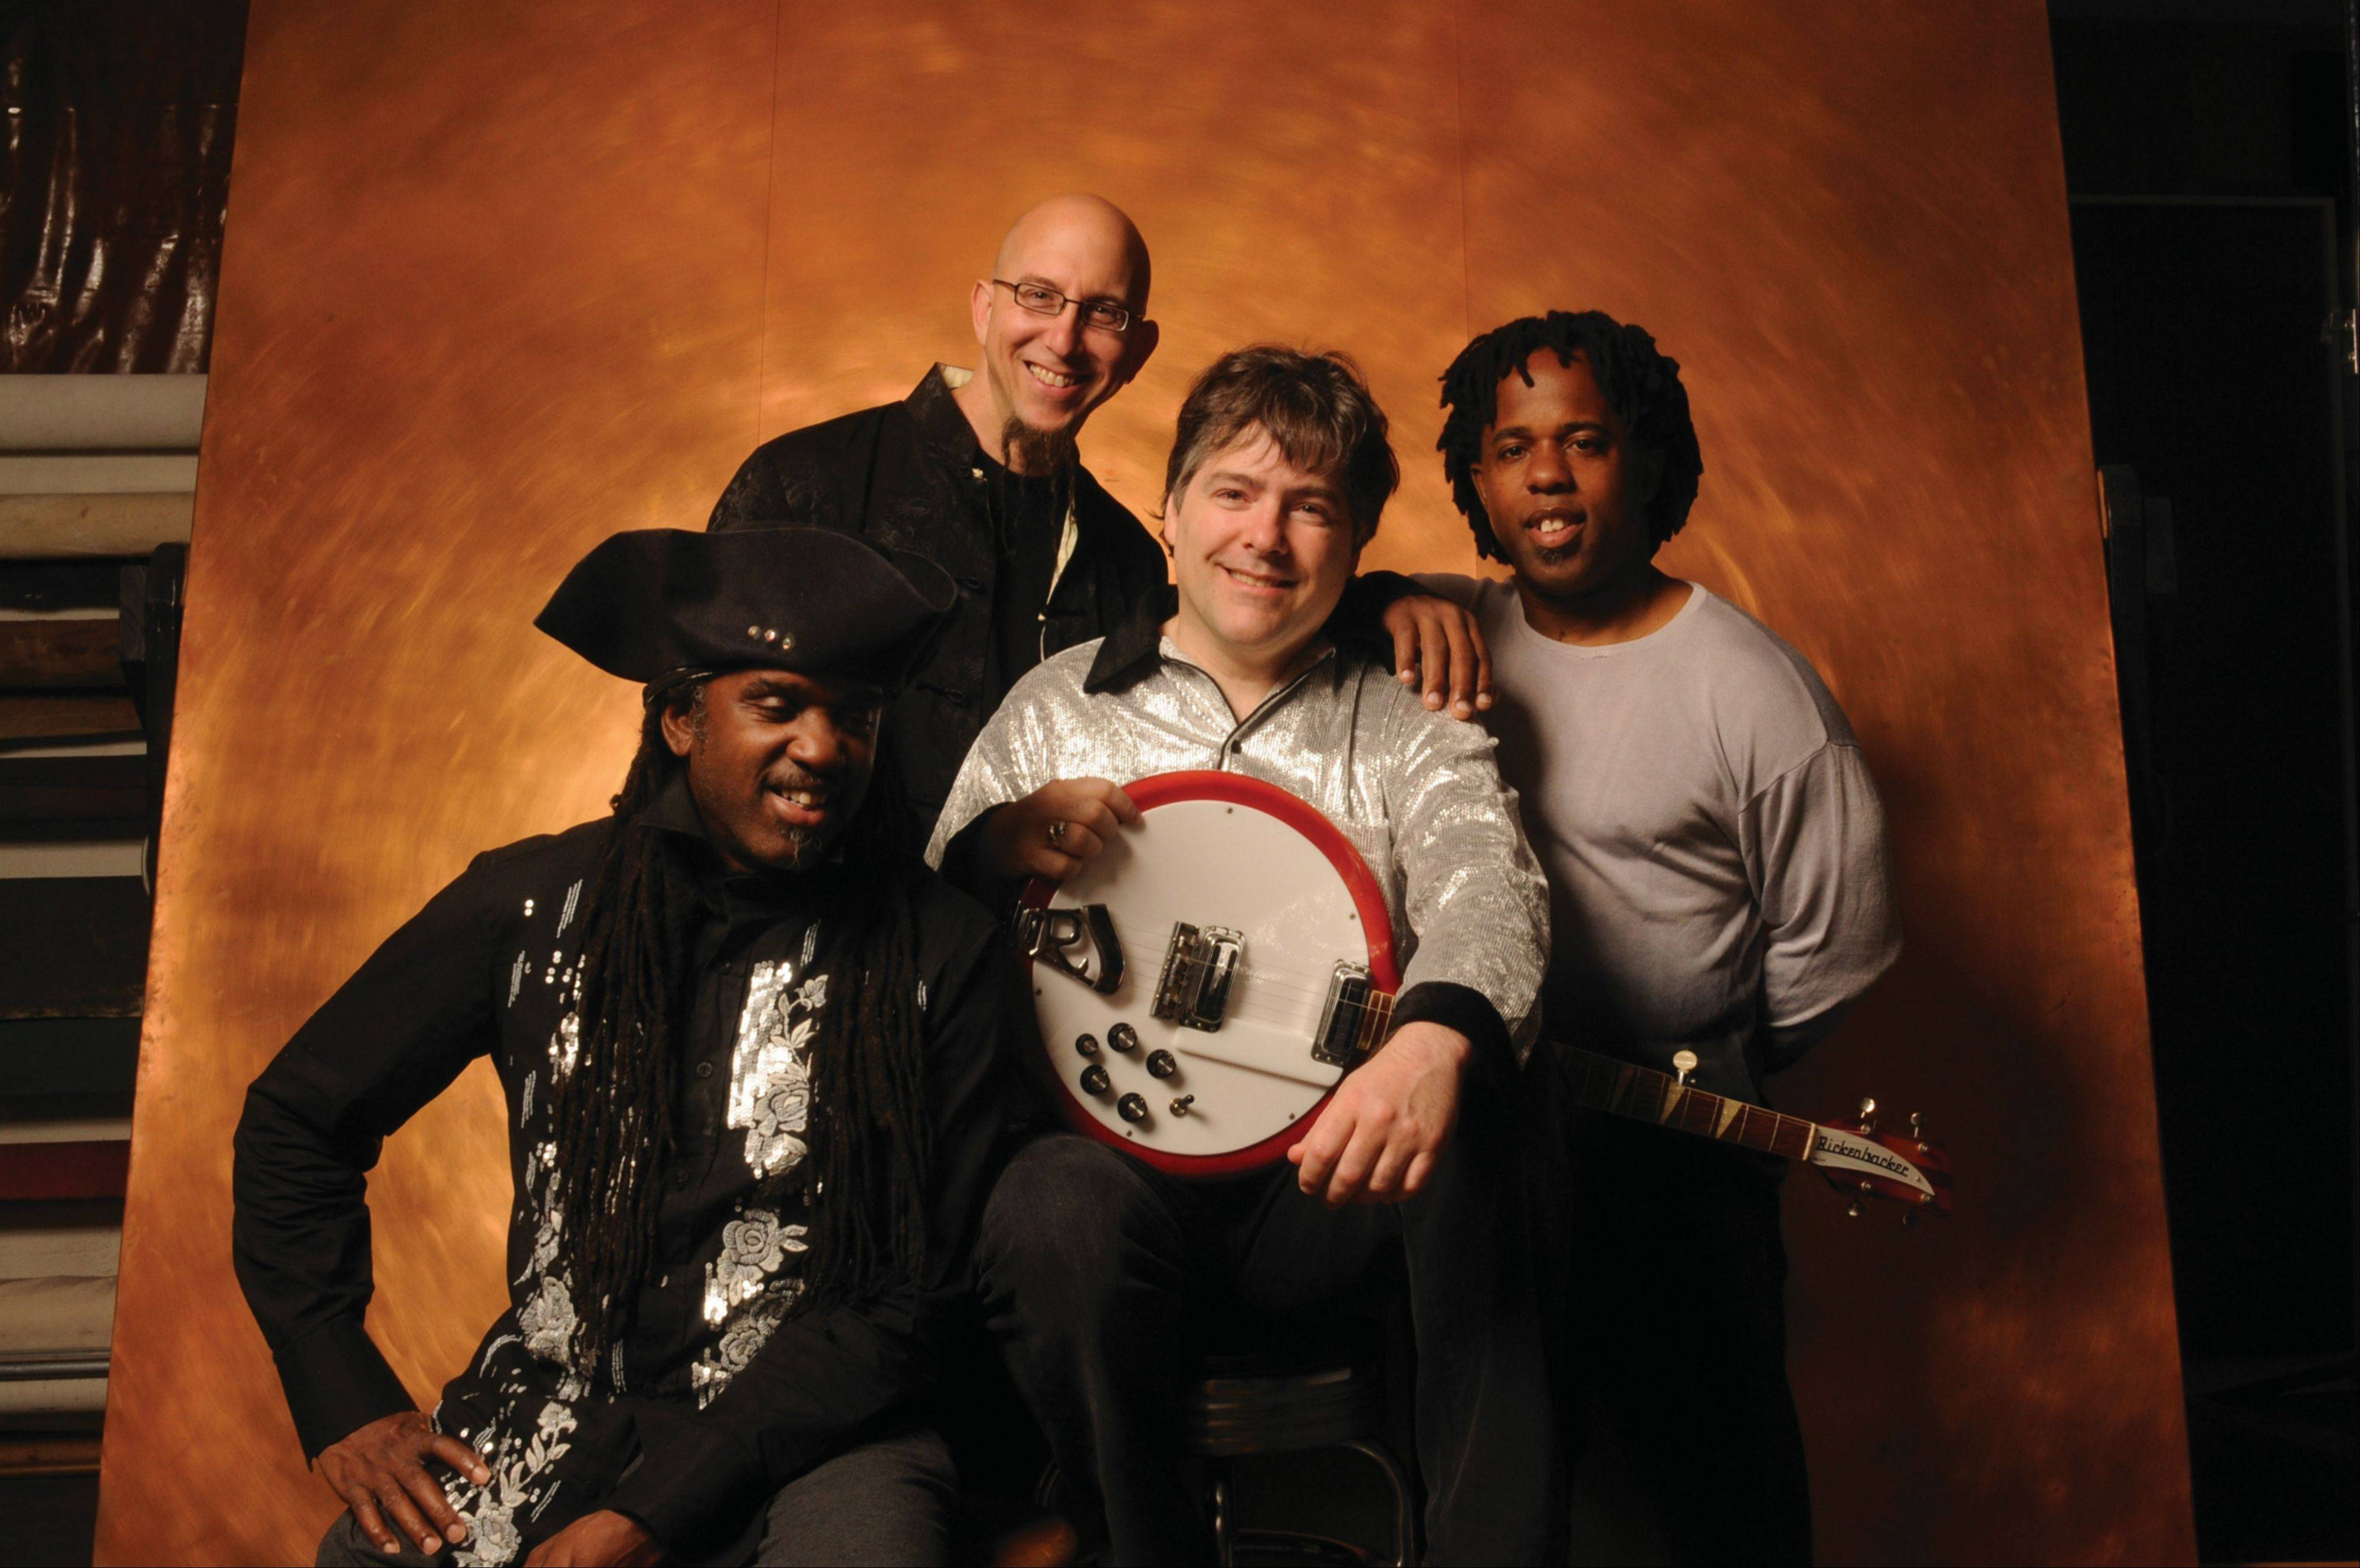 Bela Fleck and the Flecktones will play Saturday, March 3, at North Central College's Wentz Concert Hall in Naperville.